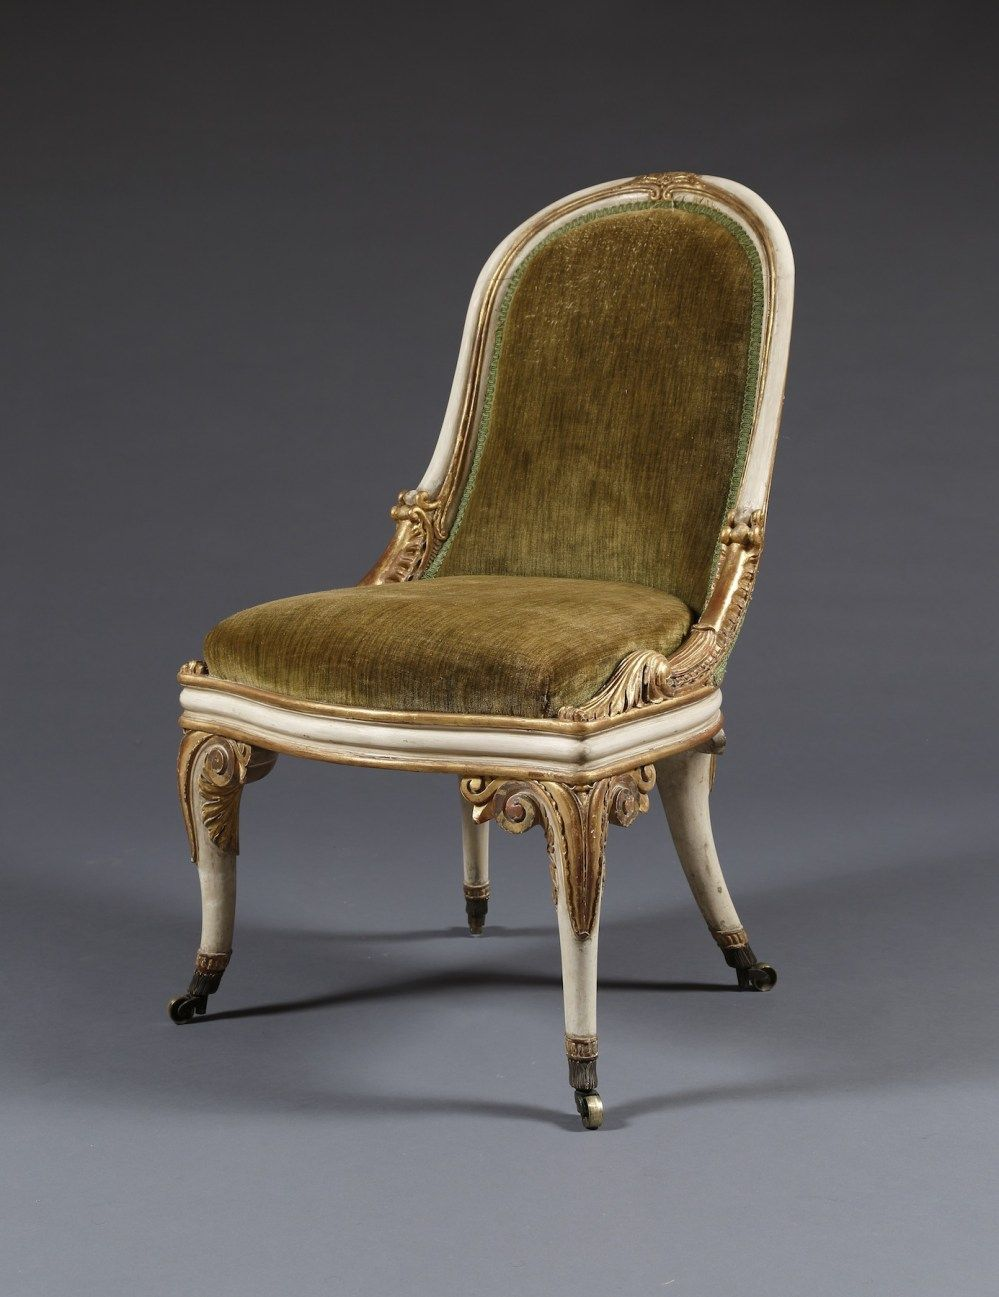 C1830 A Rare Pair Of White Painted And Parcel Gilt Salon Chairs In